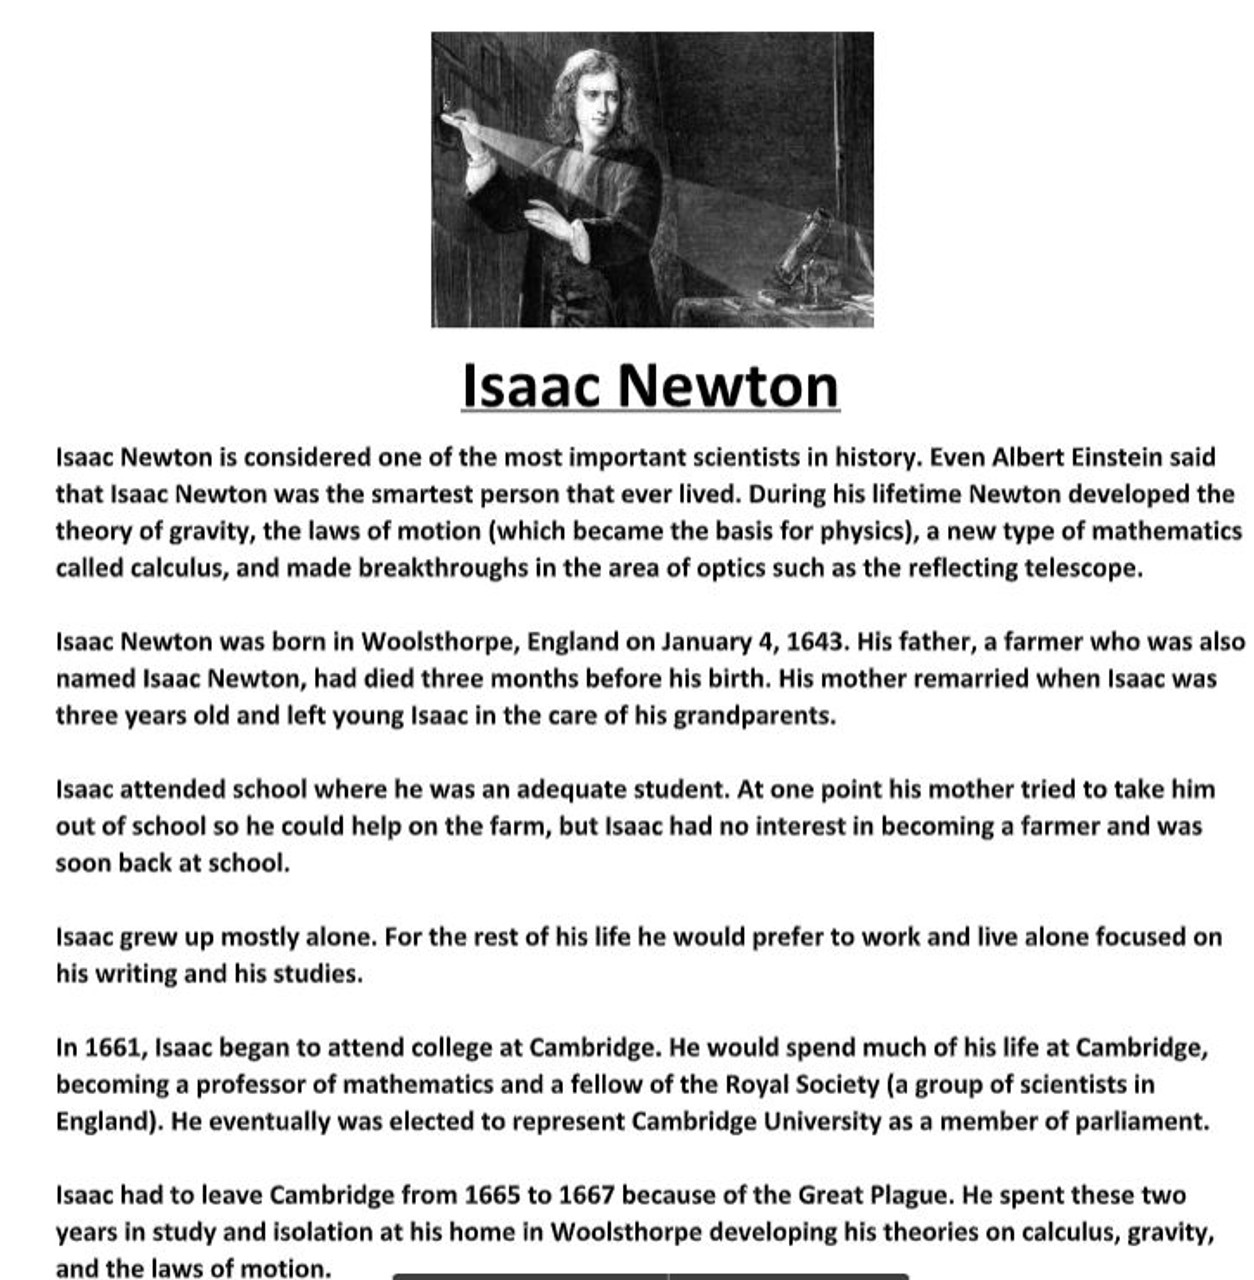 Isaac Newton Biography Worksheet - Amped Up Learning [ 1280 x 1254 Pixel ]